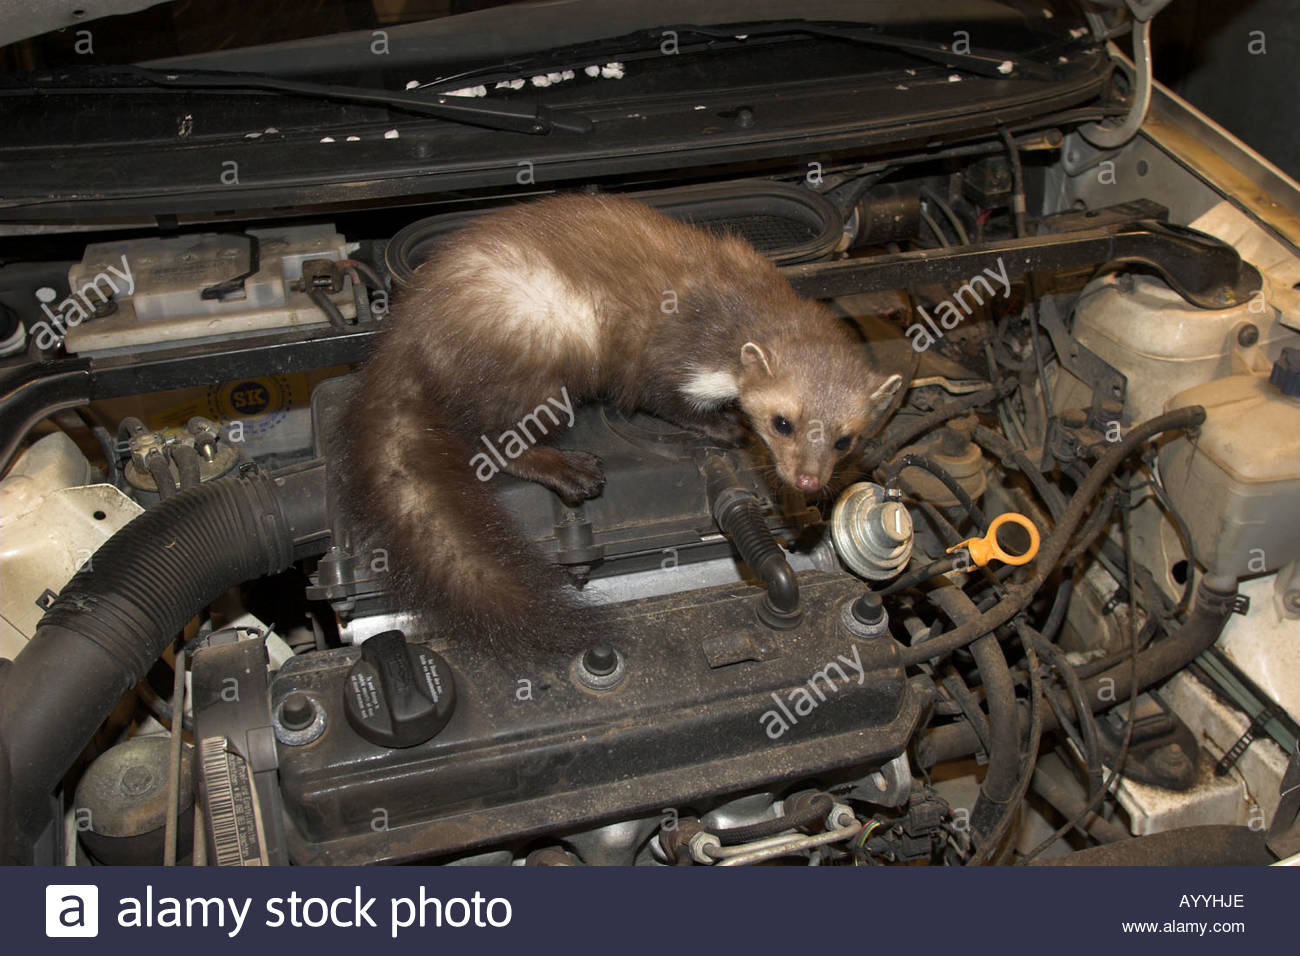 beech marten stone marte martes foina in the engine compartment stock photo royalty free. Black Bedroom Furniture Sets. Home Design Ideas